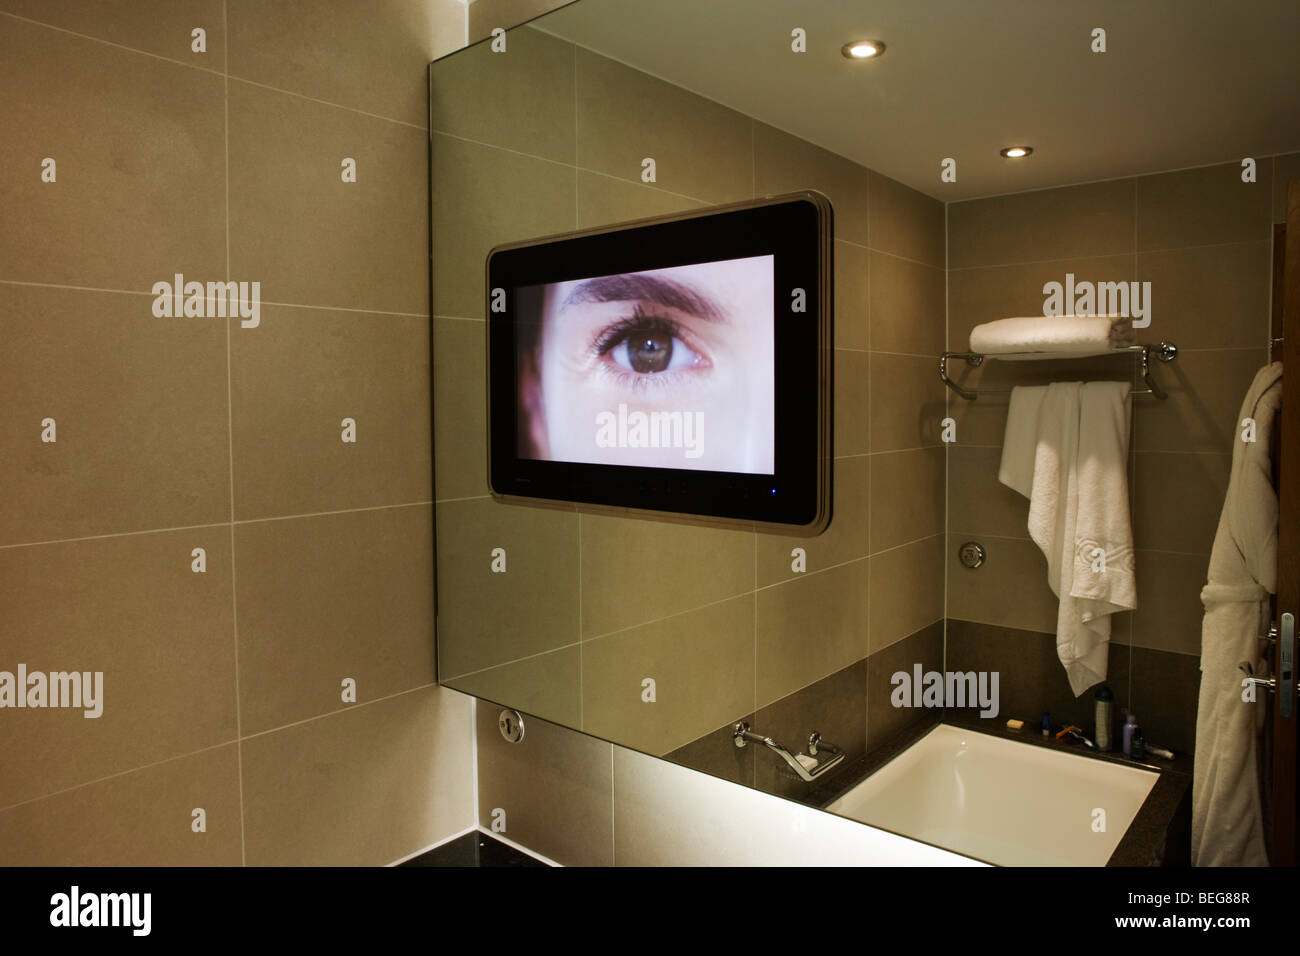 tv-news-on-screen-in-luxury-room-at-hote